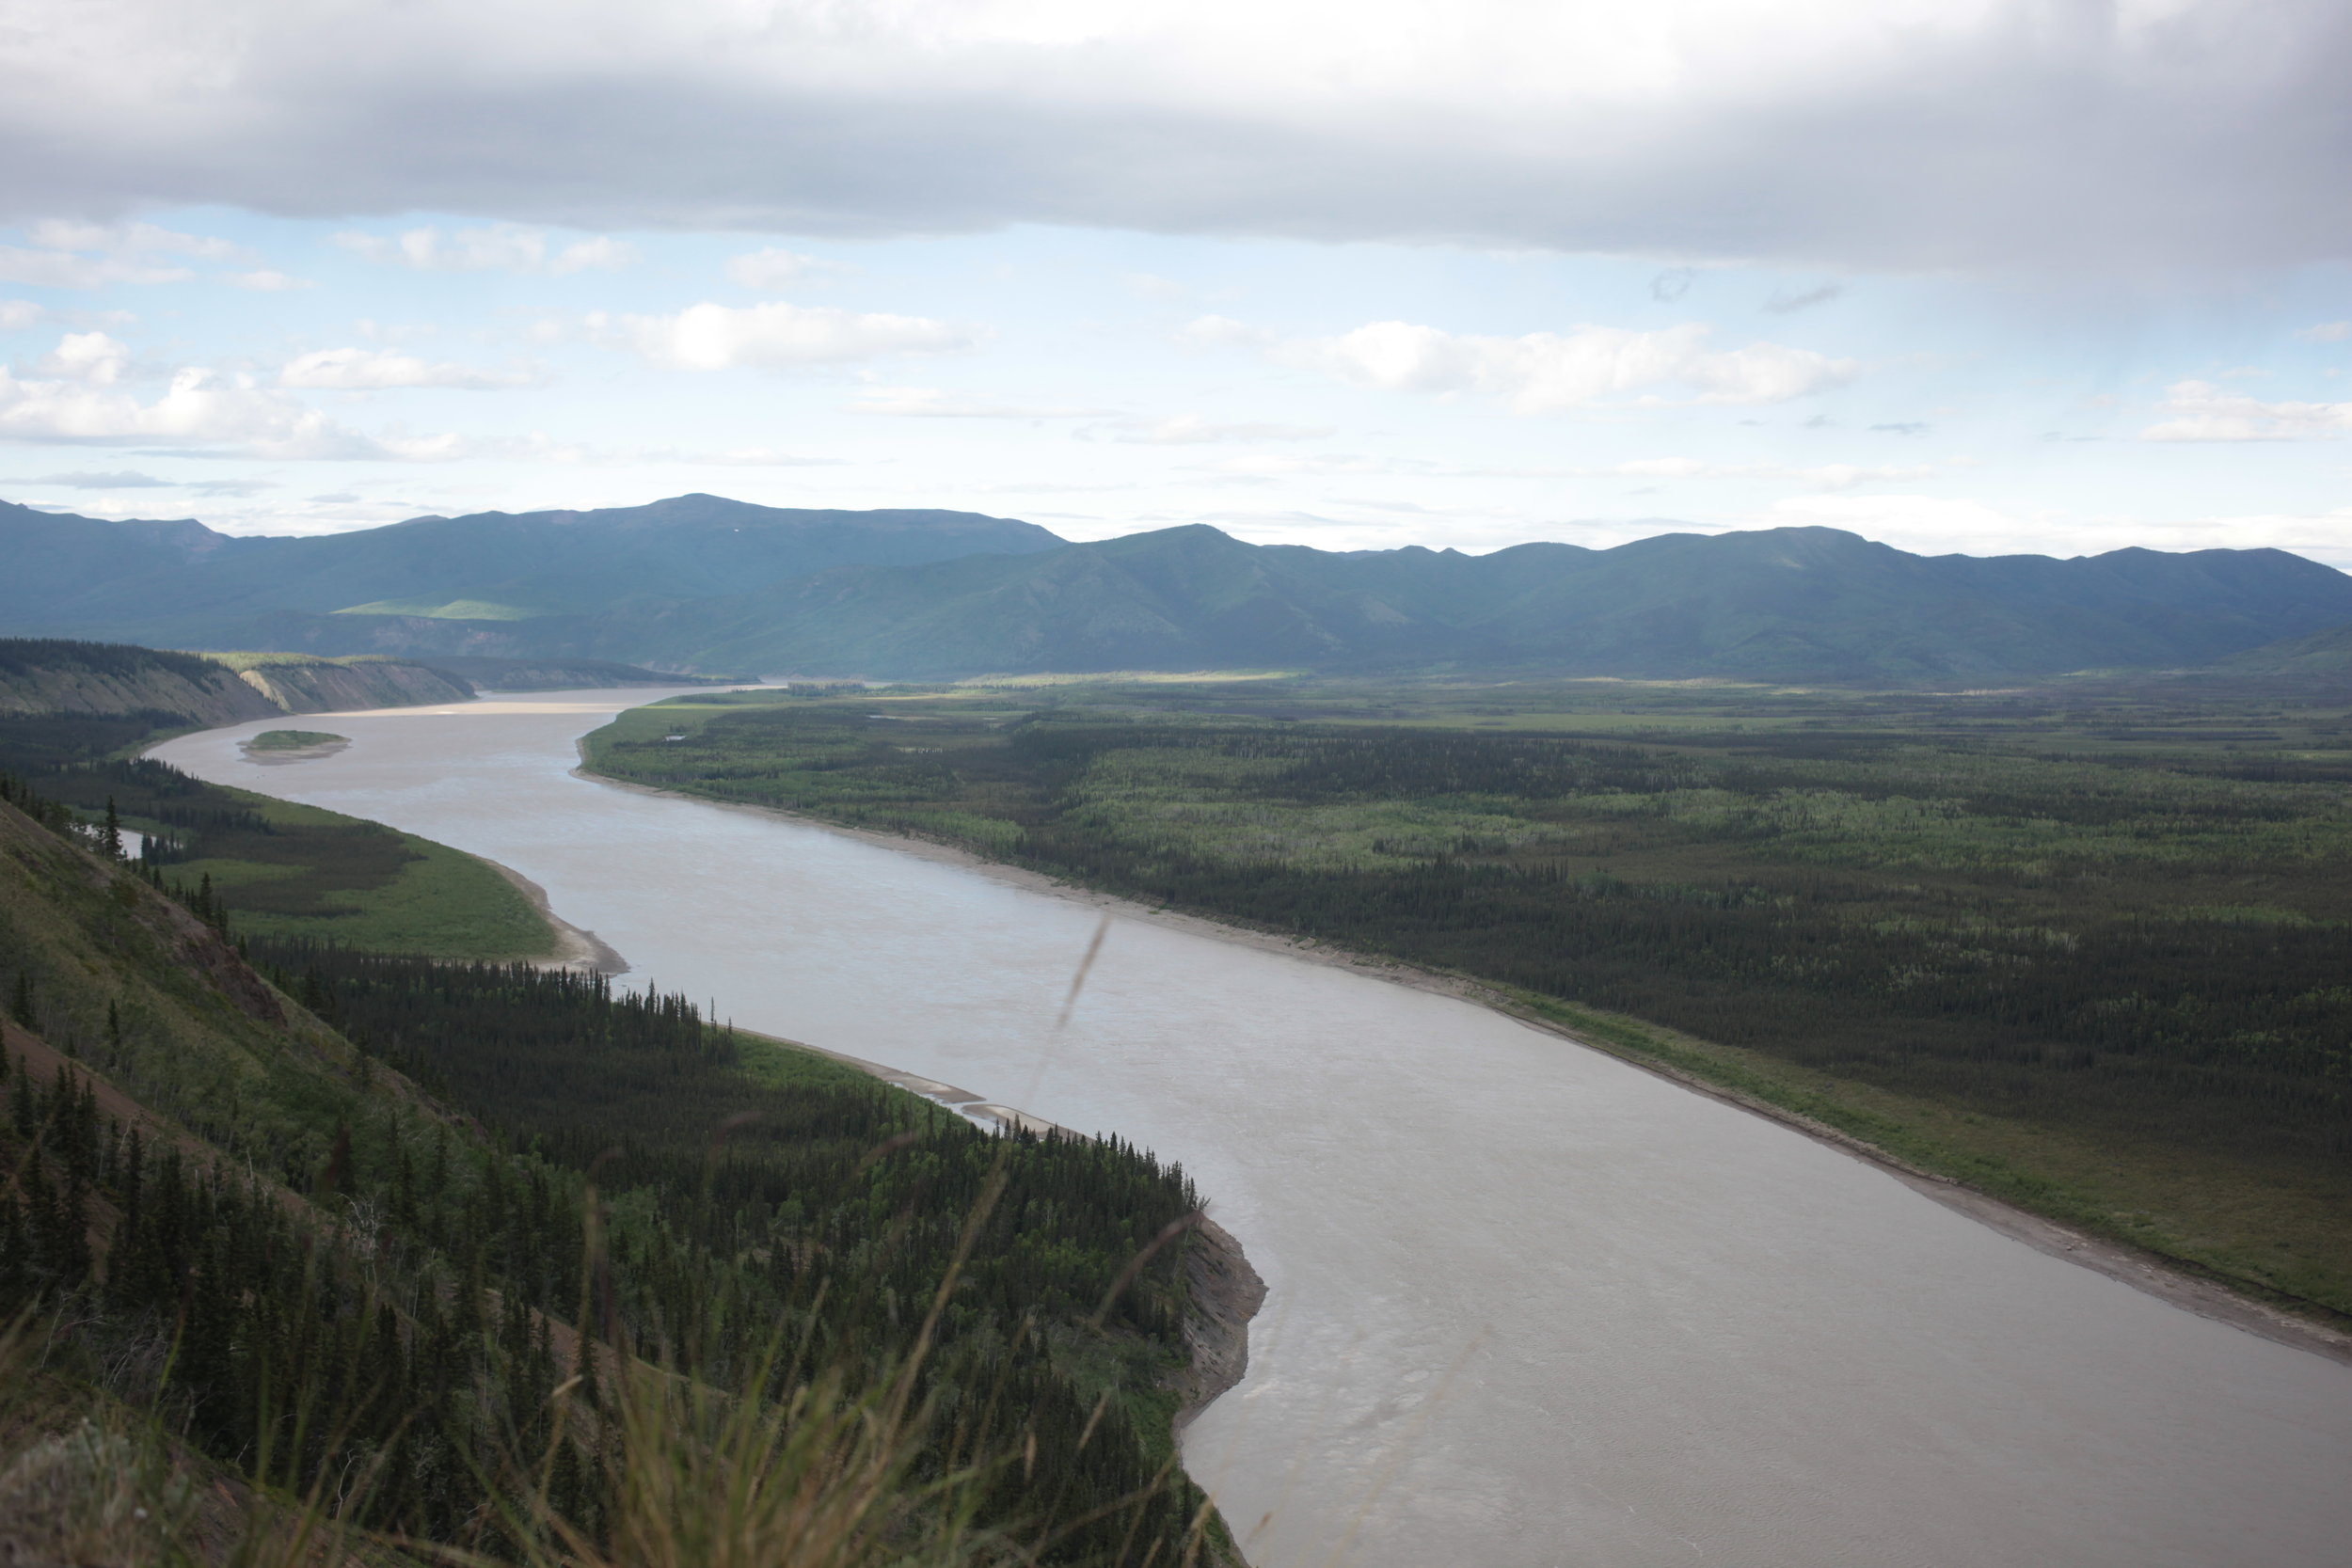 Approximate location of where Eagle's new fish wheel will be used on the Yukon River.